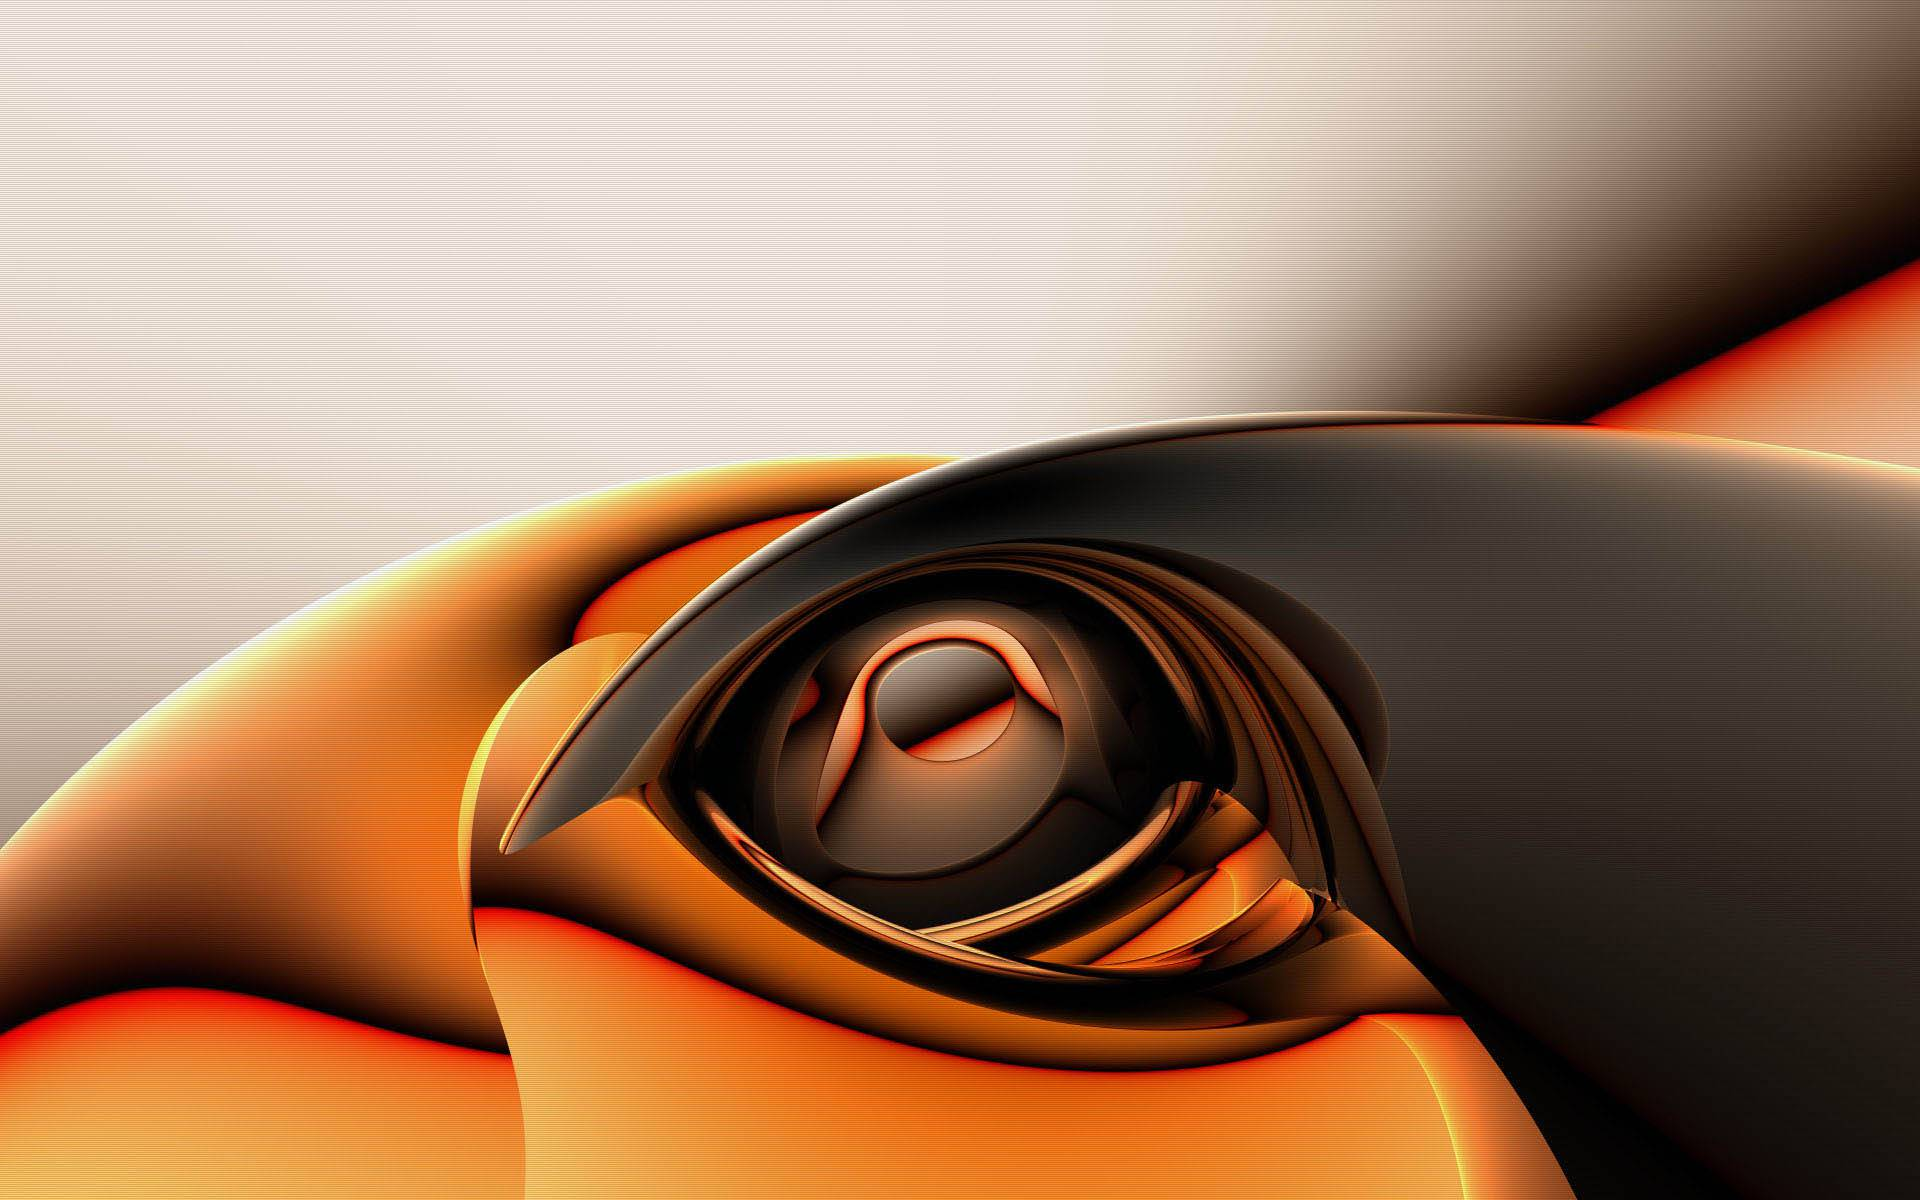 30 Hd Orange Wallpapers